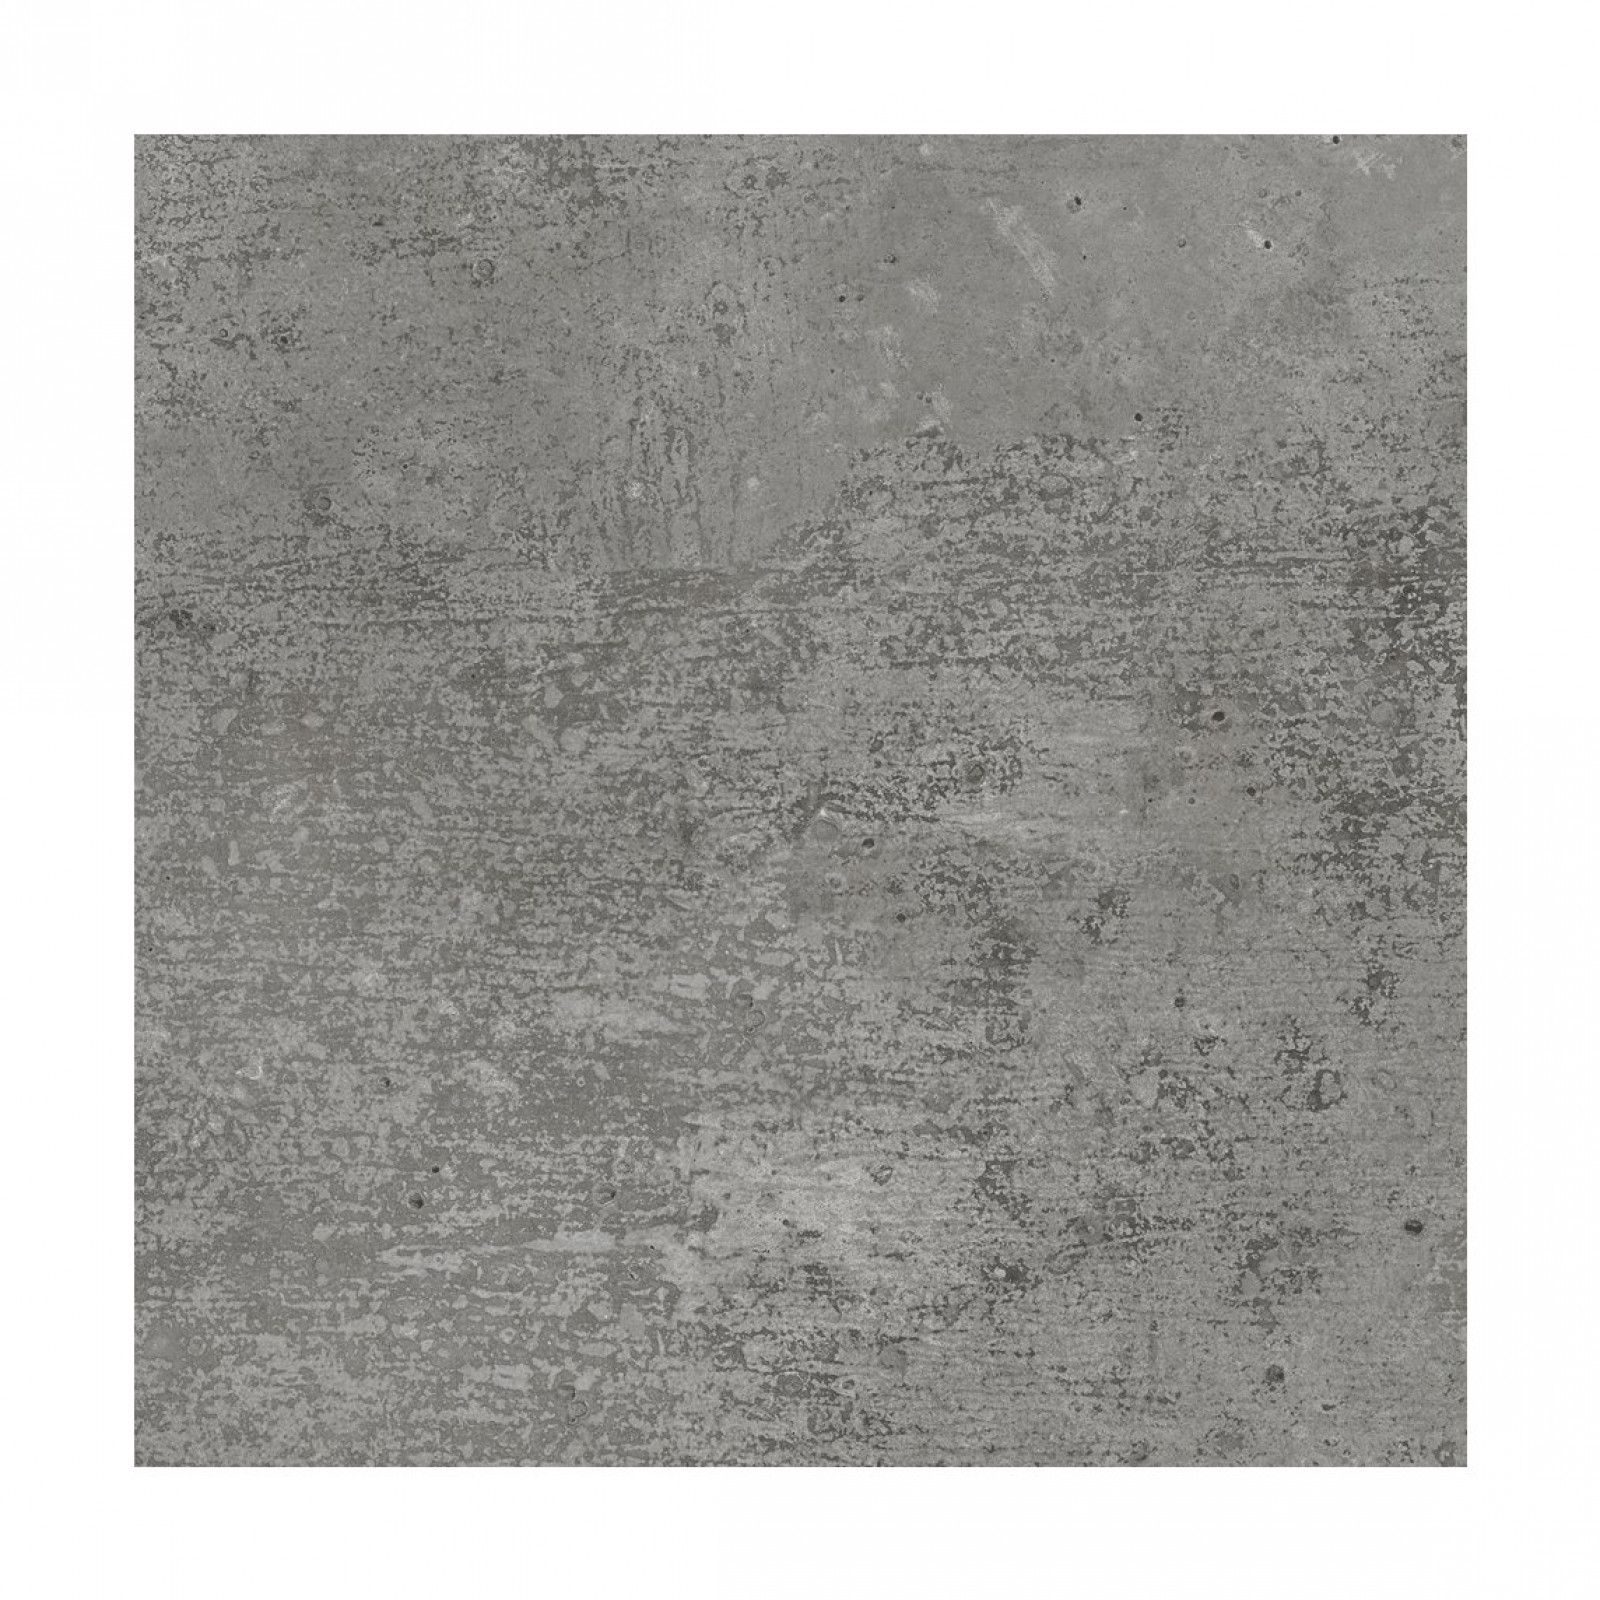 Hd Dark Grey Matt Floor - British Ceramic Tile